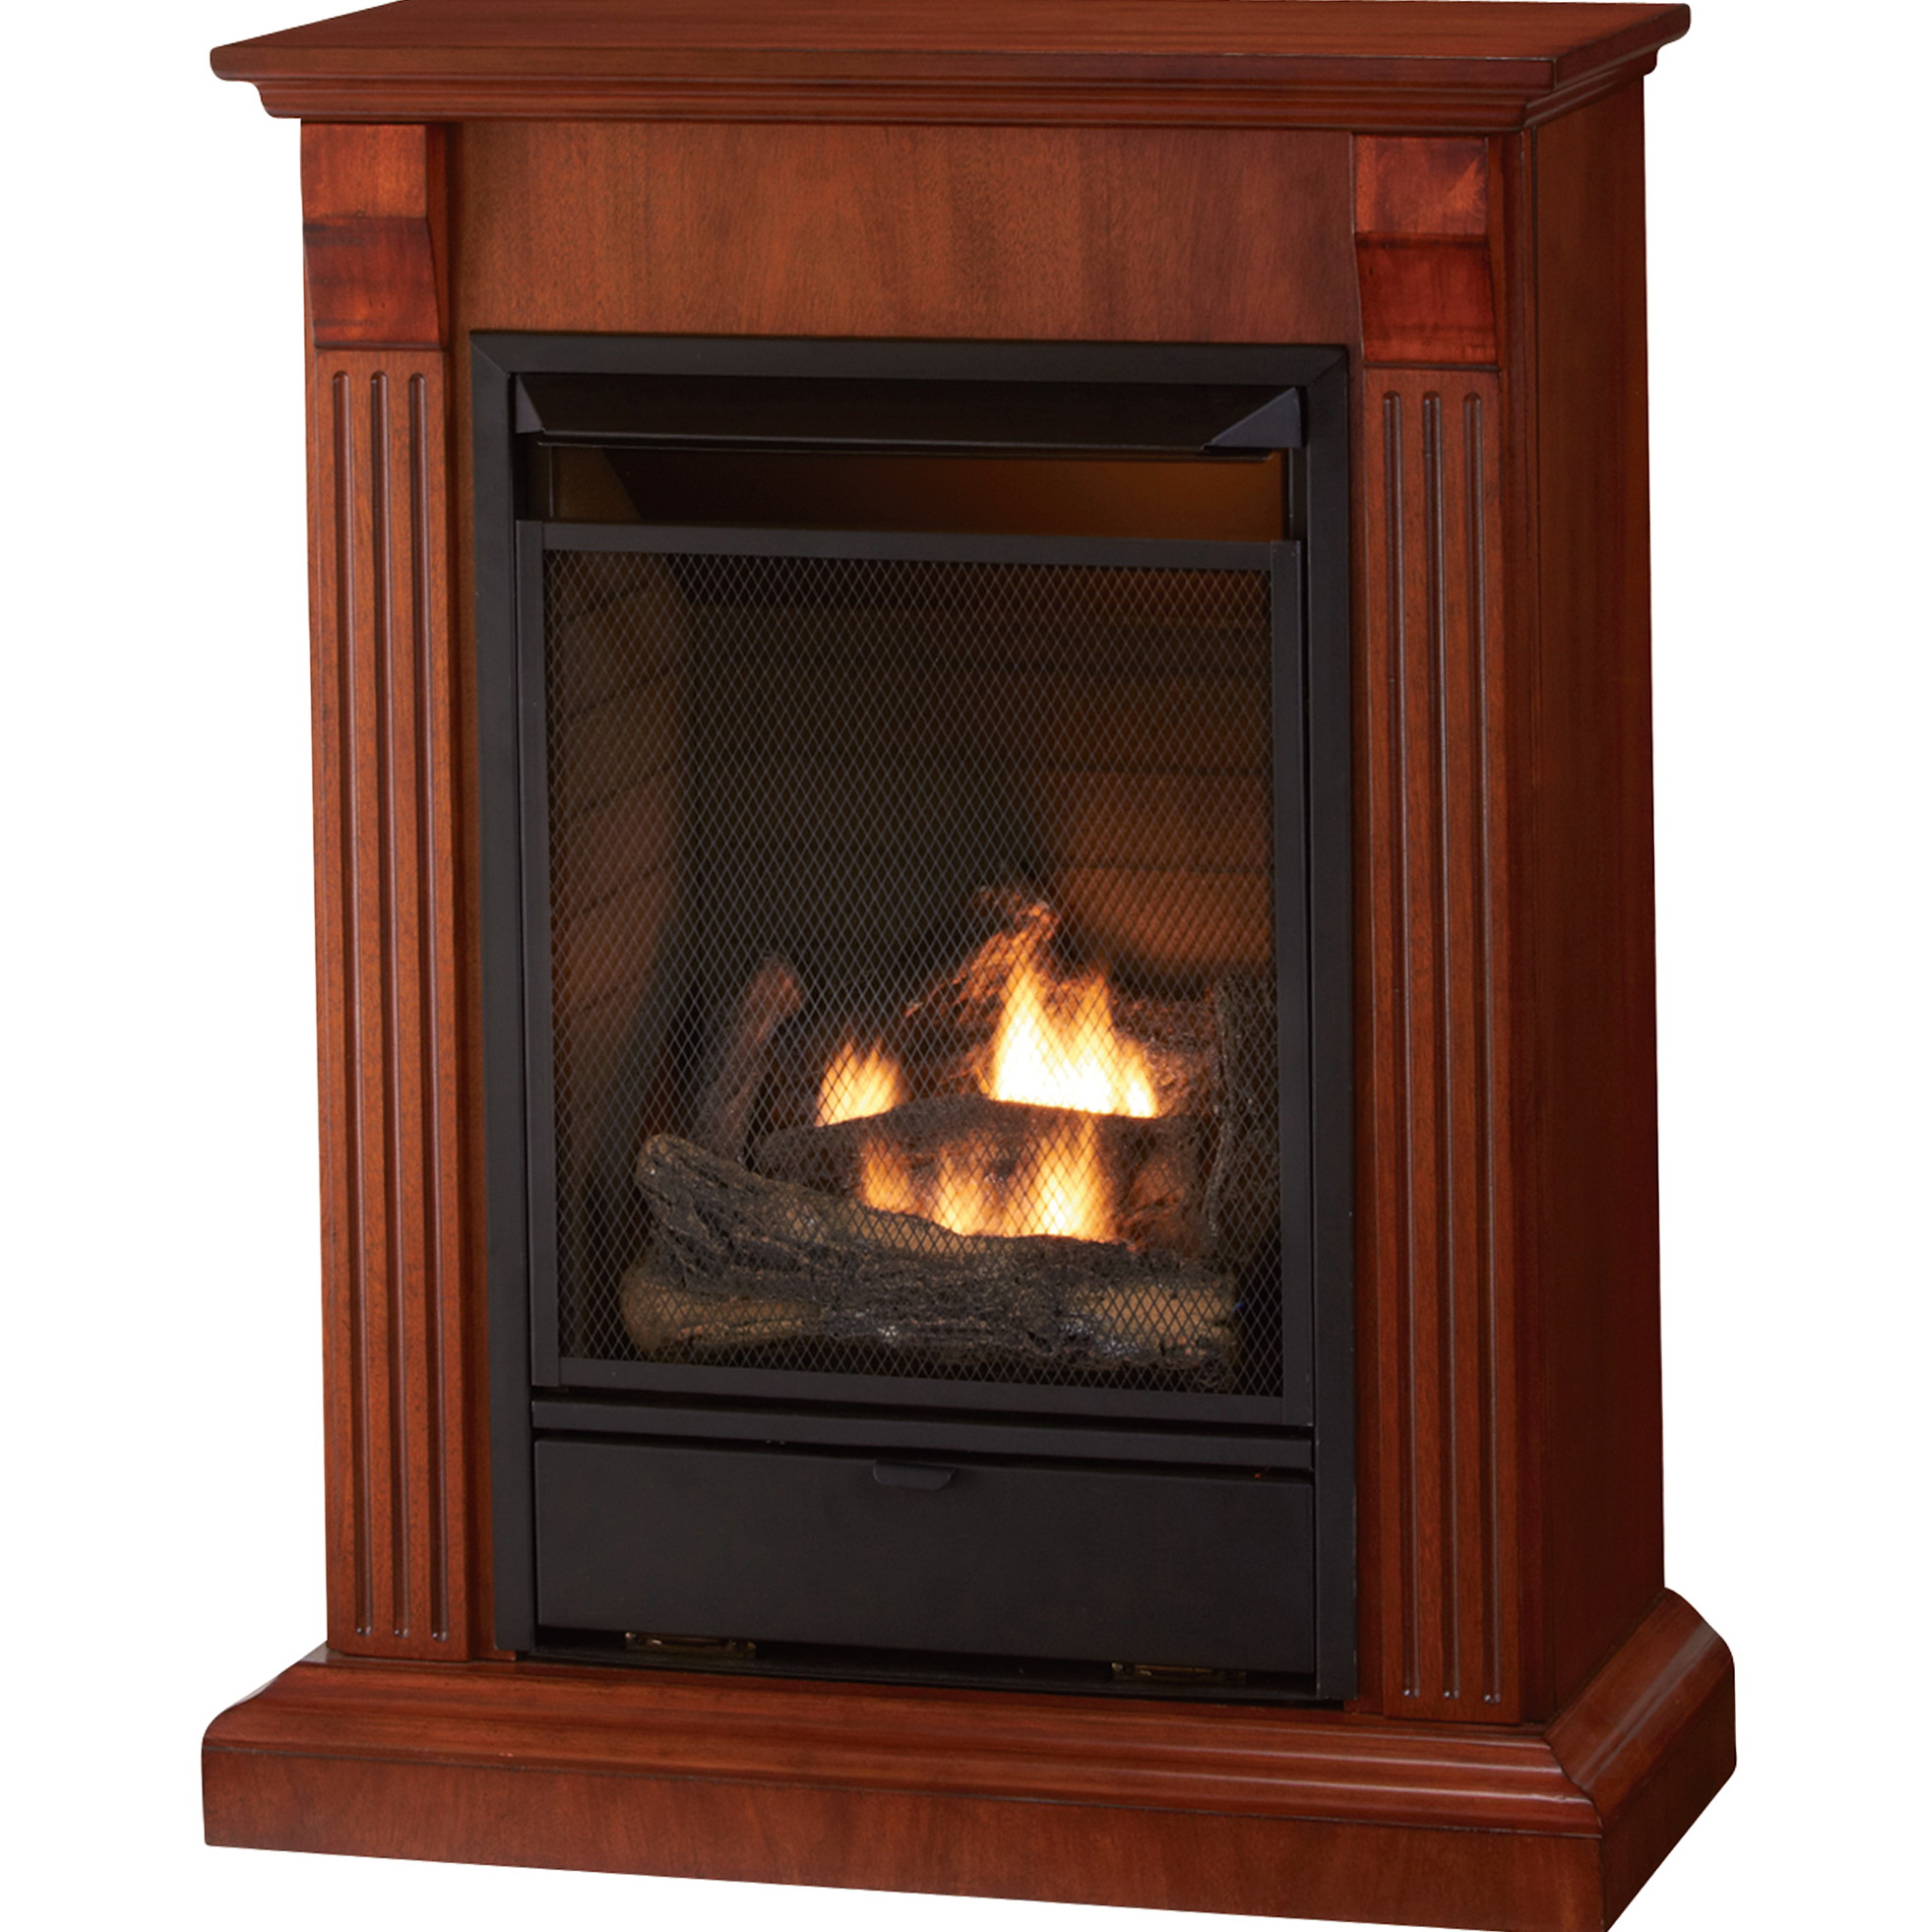 Home Depot Fireplace Insert. SpectraFire 36 In Traditional